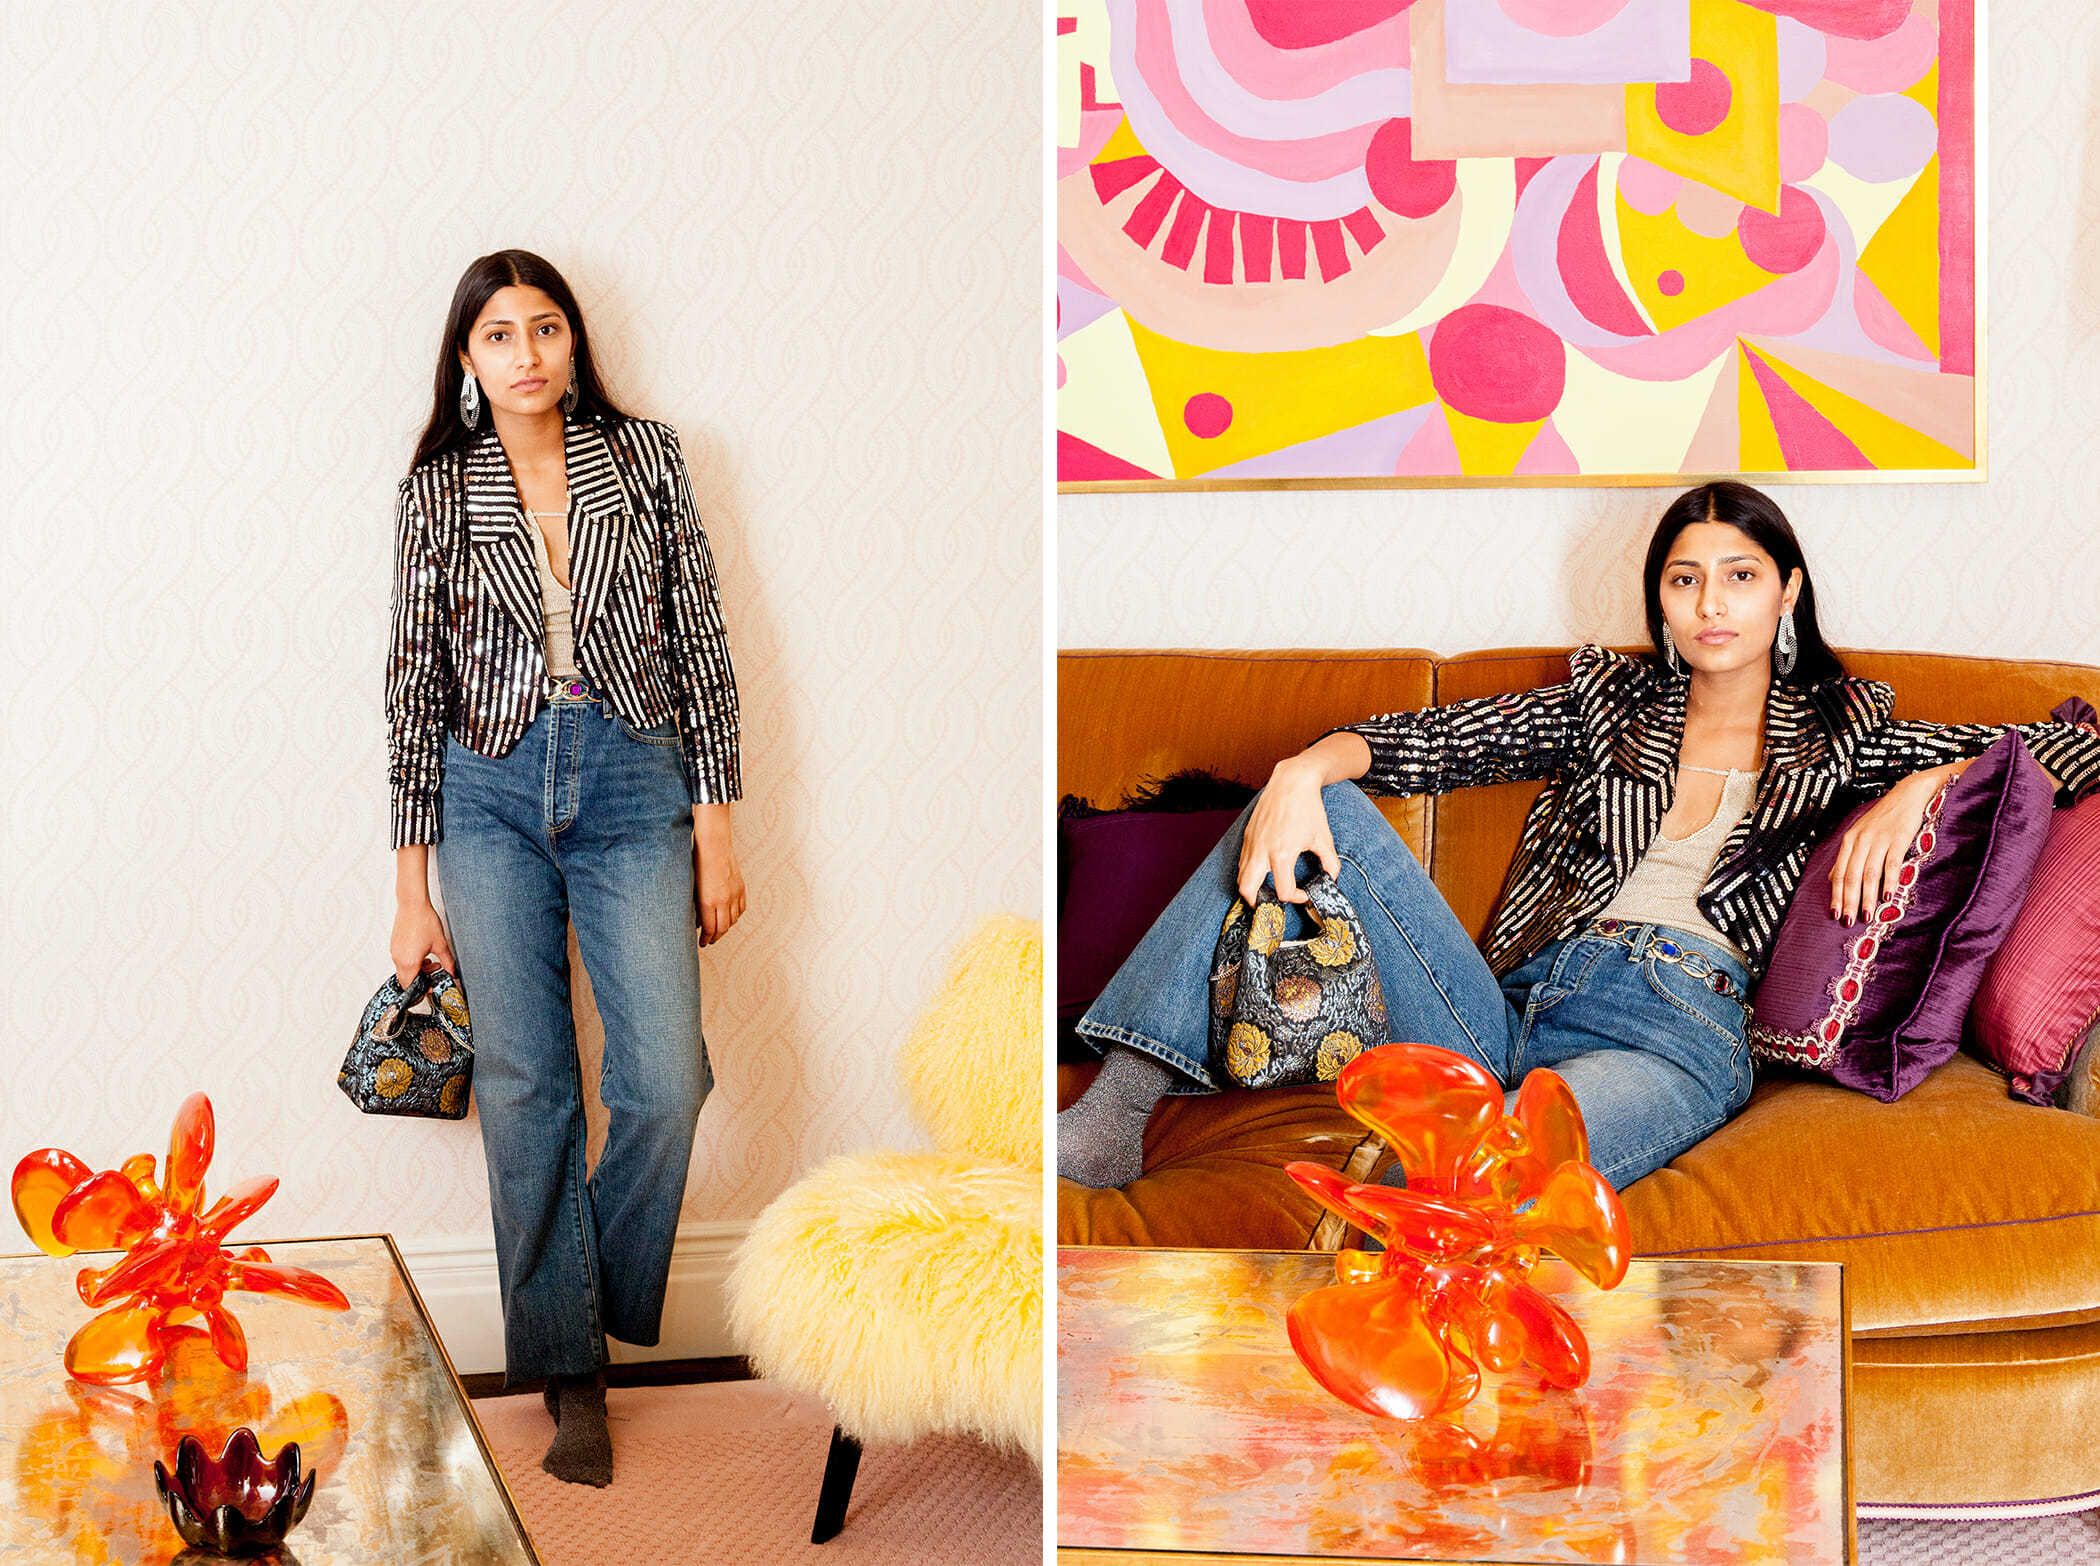 Juliette Jean in Soho wash featured in Man Repeller's  Holiday Party Looks for When You Have to Leave Your Shoes at the Door